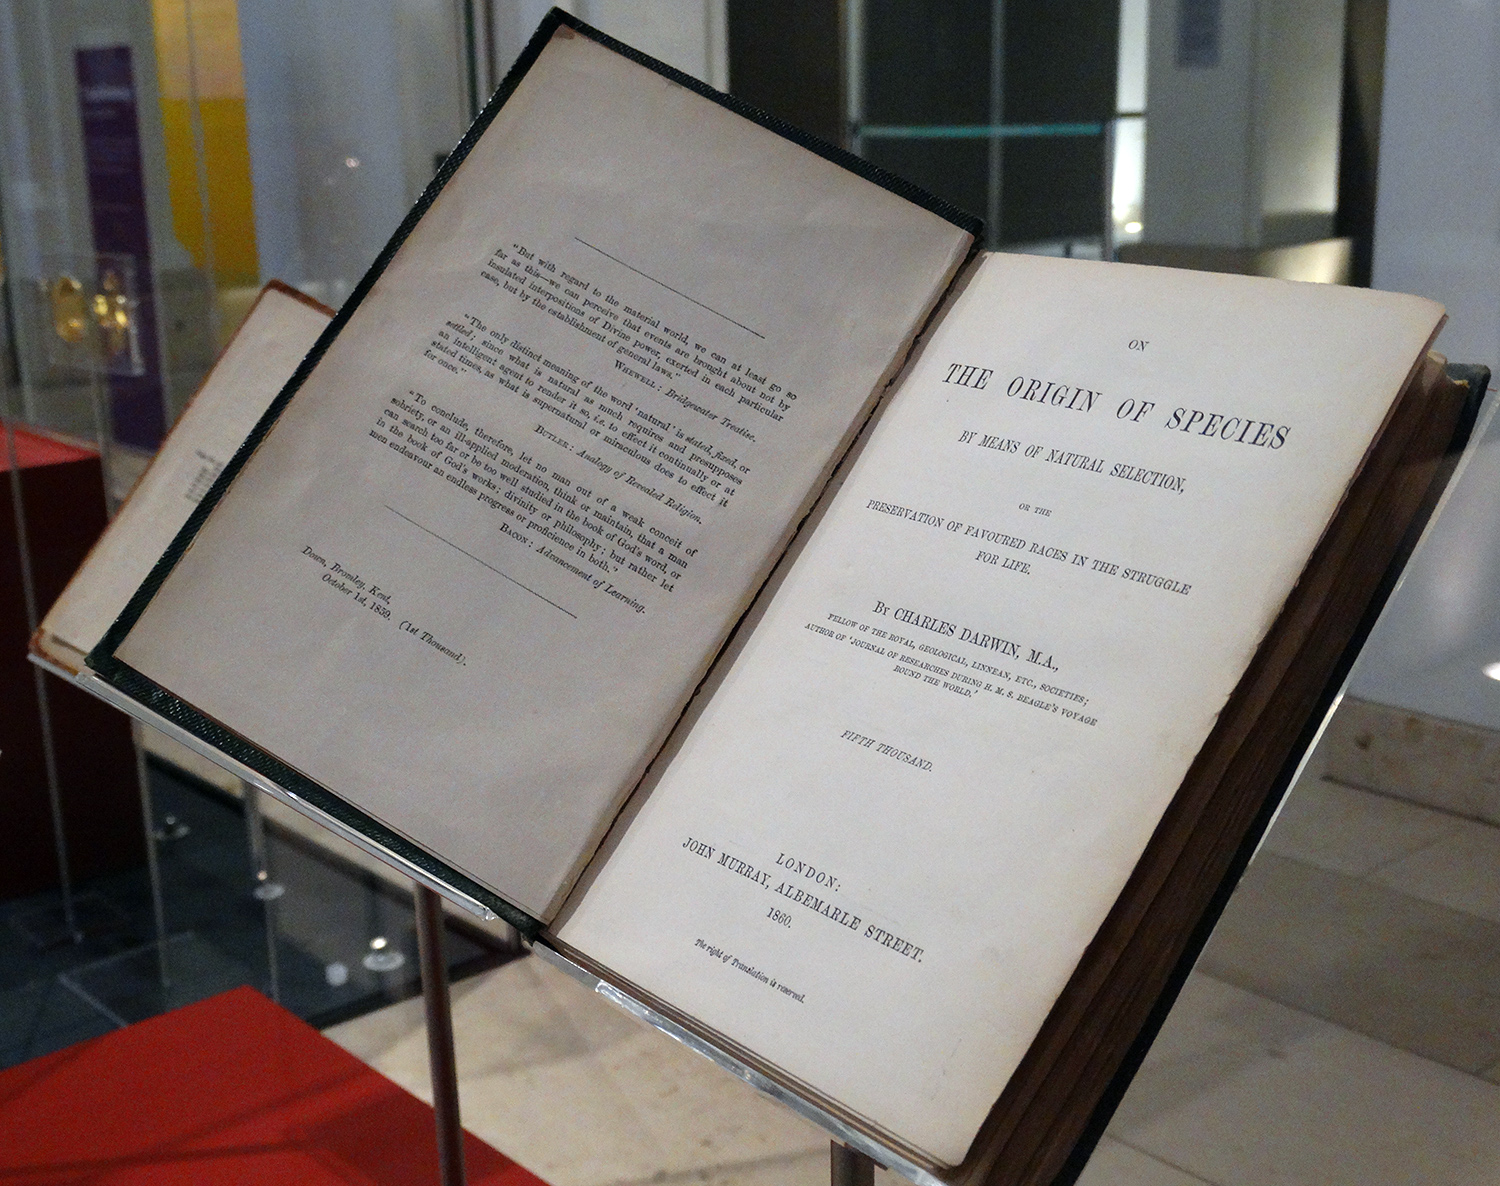 A second edition of On the Origin of Species by Charles Darwin, published by John Murray, London, 1860. This is display in our Discoveries gallery at the National Museum of Scotland.